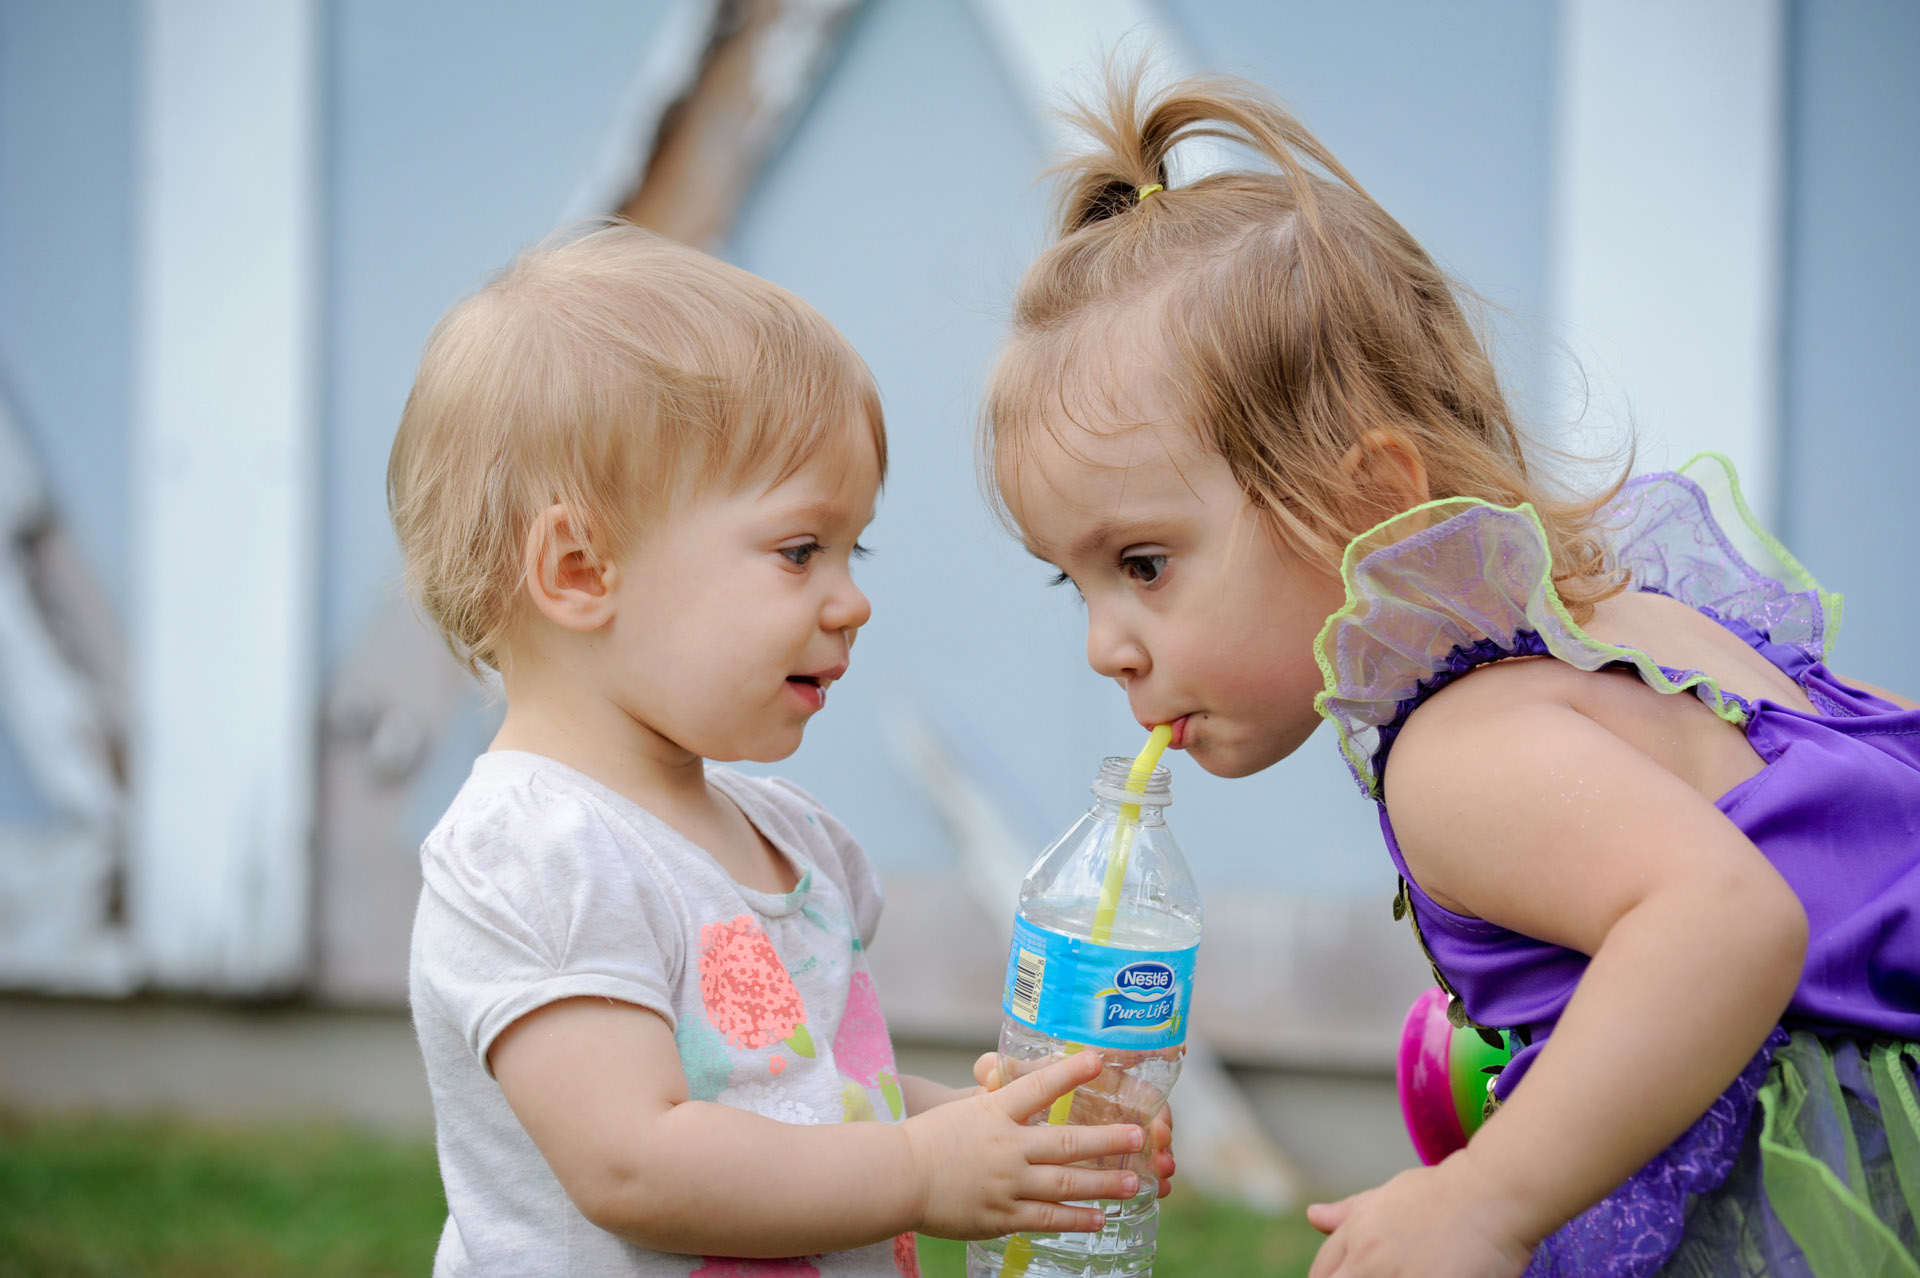 Best Detroit children photographer takes candid children photos with the children throughout the photography session so I can get little moments like this sister offering her big sister a drink from her water bottle in metro Detroit, Michigan.